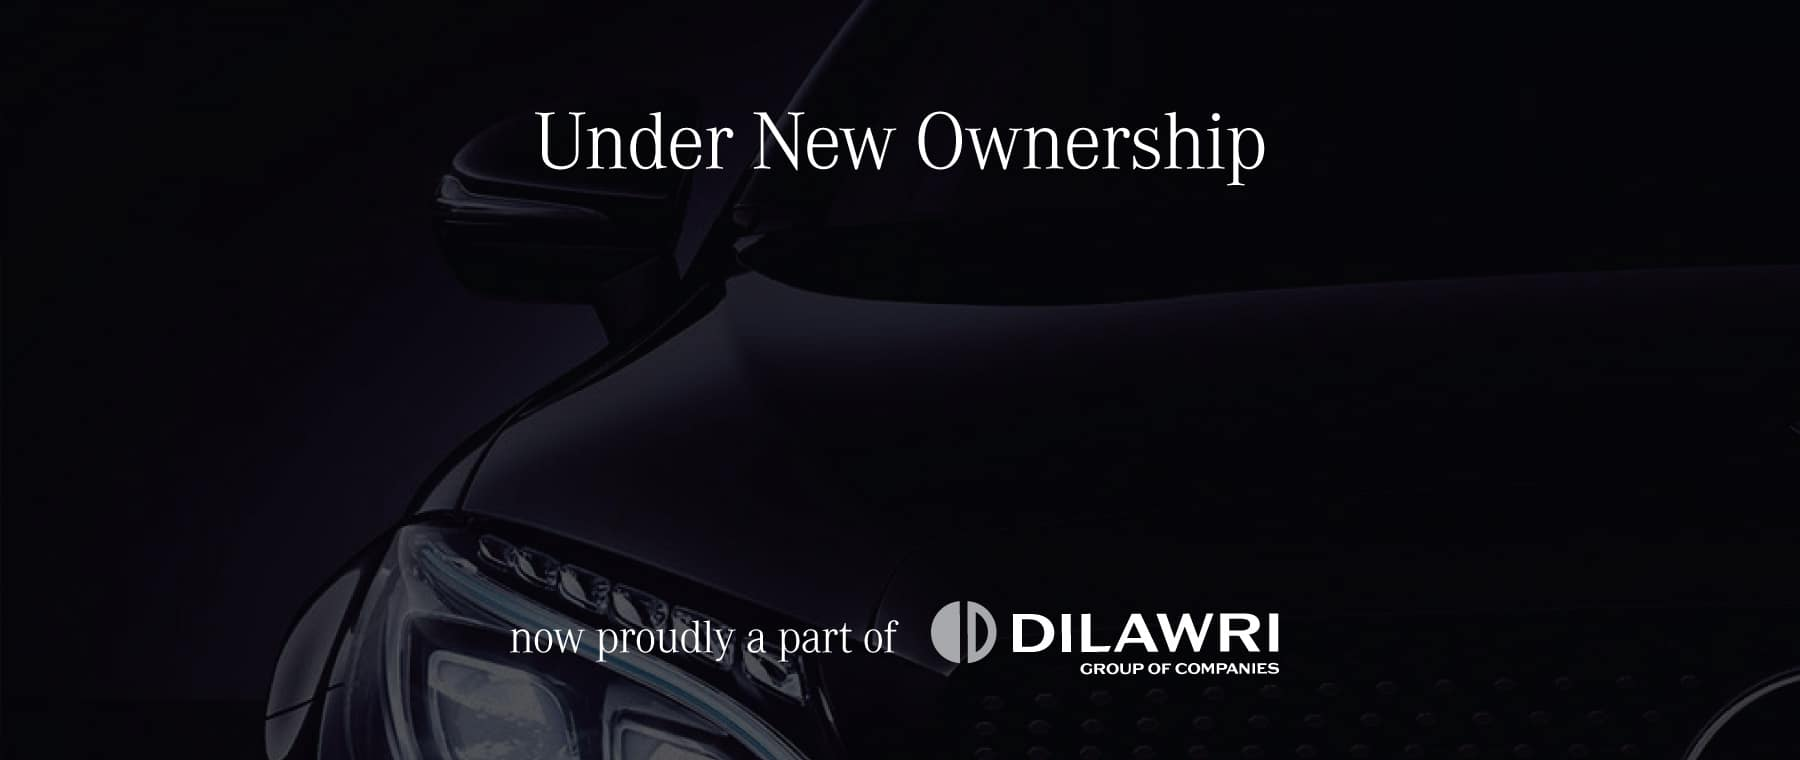 Now Proudly Part of Dilawri Group of Companies